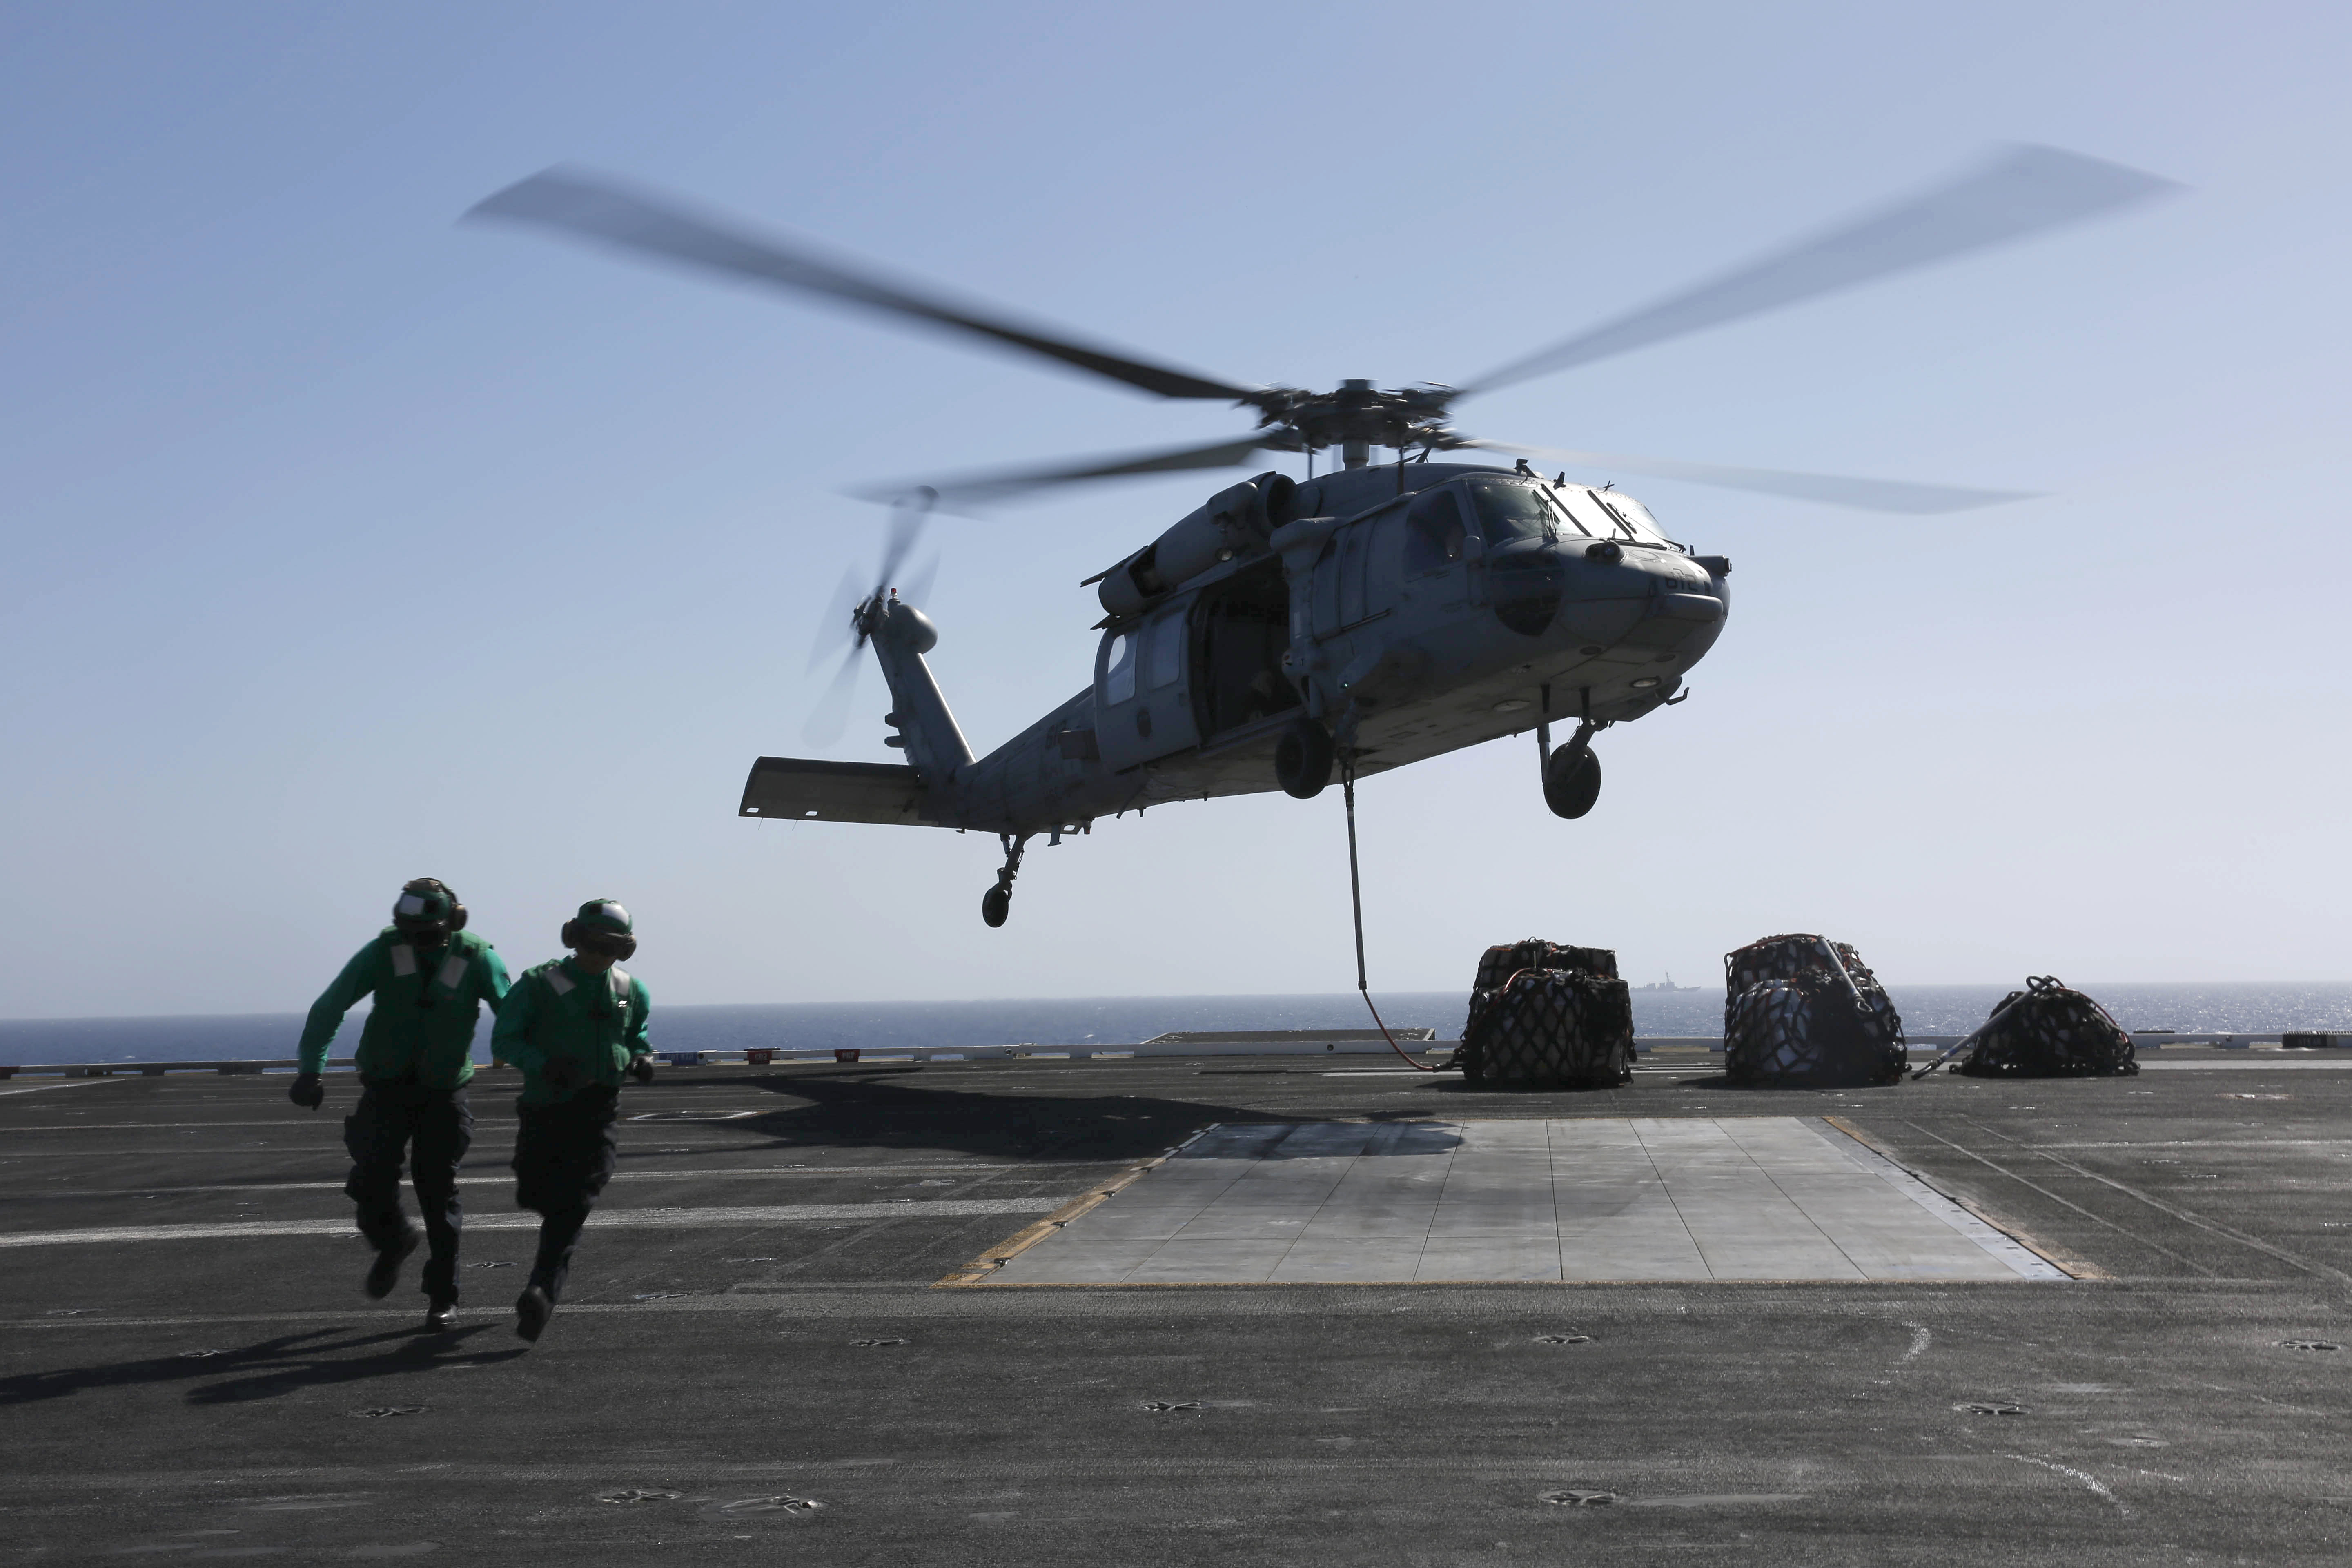 "In this handout photo provided by the U.S. Navy, Logistics Specialist 1st Class Ousseinou Kaba (left), from Silver Spring, Md., and Logistics Specialist Seaman Abigail Marshke, from Flint, Mich., attach cargo to an MH-60S Sea Hawk helicopter from the ""Nightdippers"" of Helicopter Sea Combat Squadron (HSC) 5 from the flight deck of the Nimitz-class aircraft carrier USS Abraham Lincoln (CVN 72) May 10, 2019 in the Red Sea. Photo by Mass Communication Specialist Mass Communication Specialist 3rd Class Amber Smalley/U.S. Navy via Getty Images"